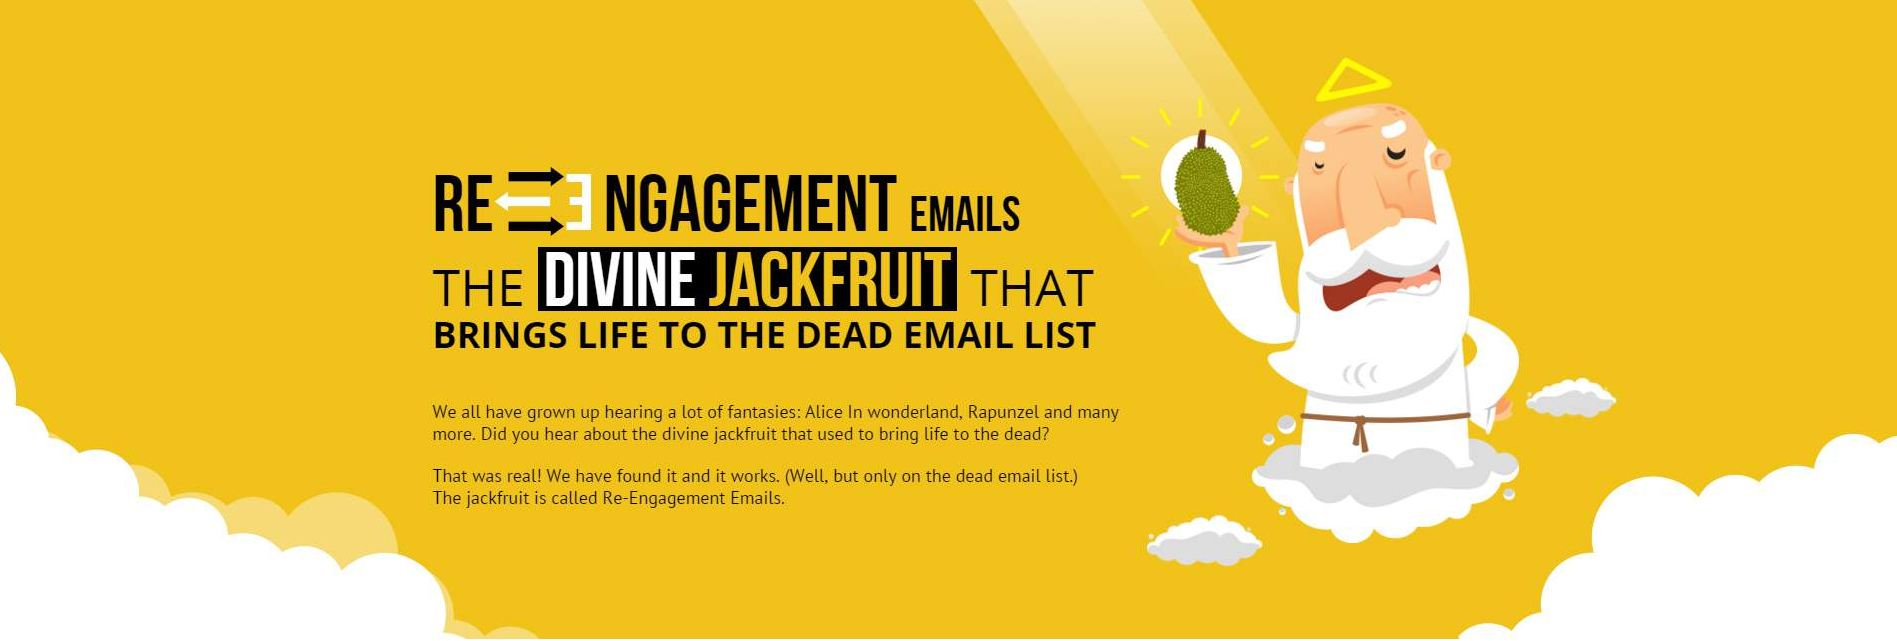 How to craft effective re-engagement emails [Infographic] - http://helenowen.org/craft-effective-reengagement-emails-infographic/